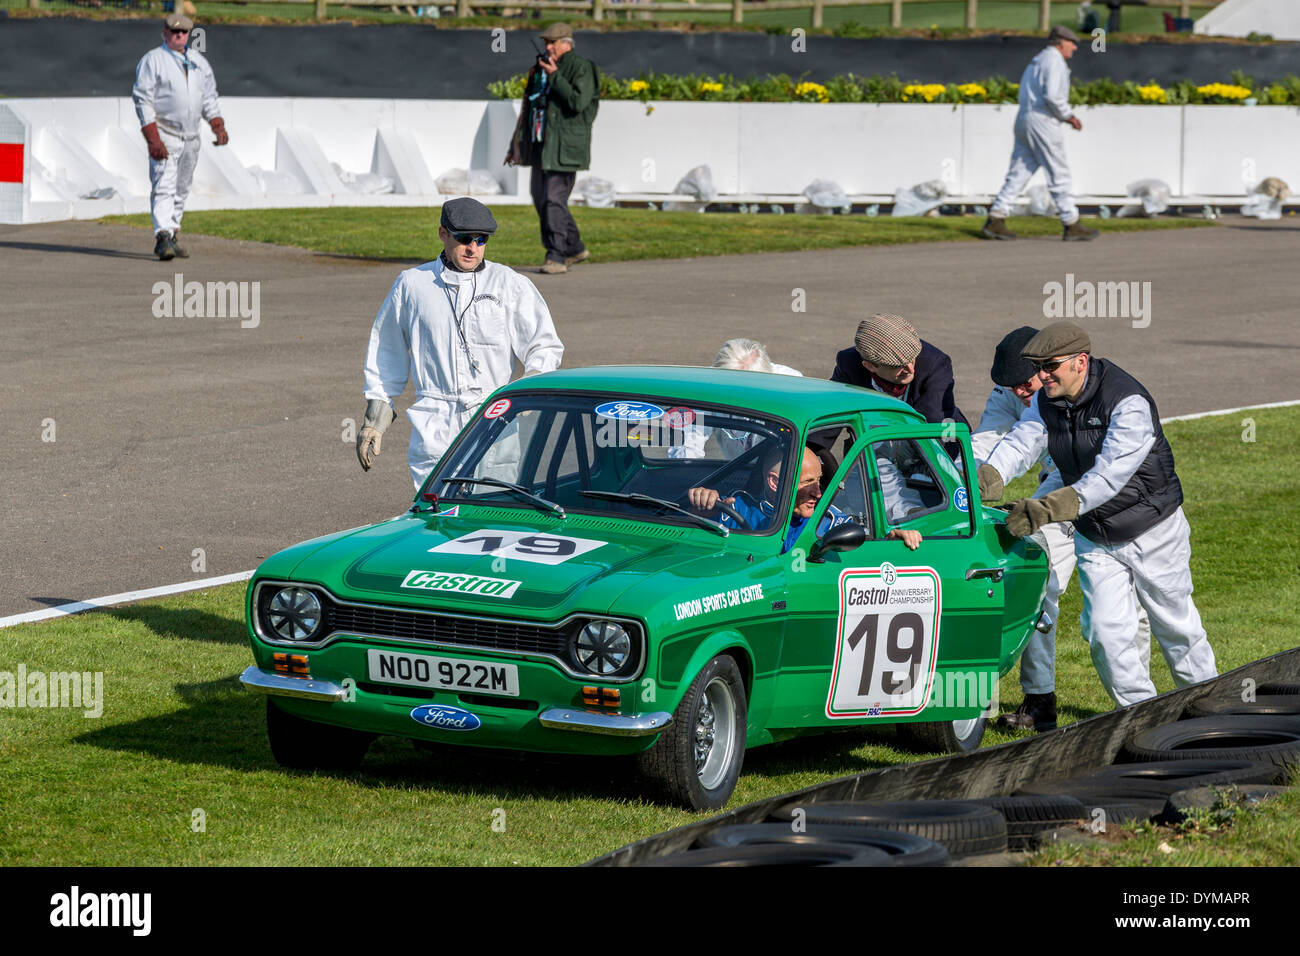 1974 Ford Escort MkI attended by marshals. Driver Peter Clements, Gerry Marshall Trophy Race. 72nd Goodwood Members meeting, UK. - Stock Image